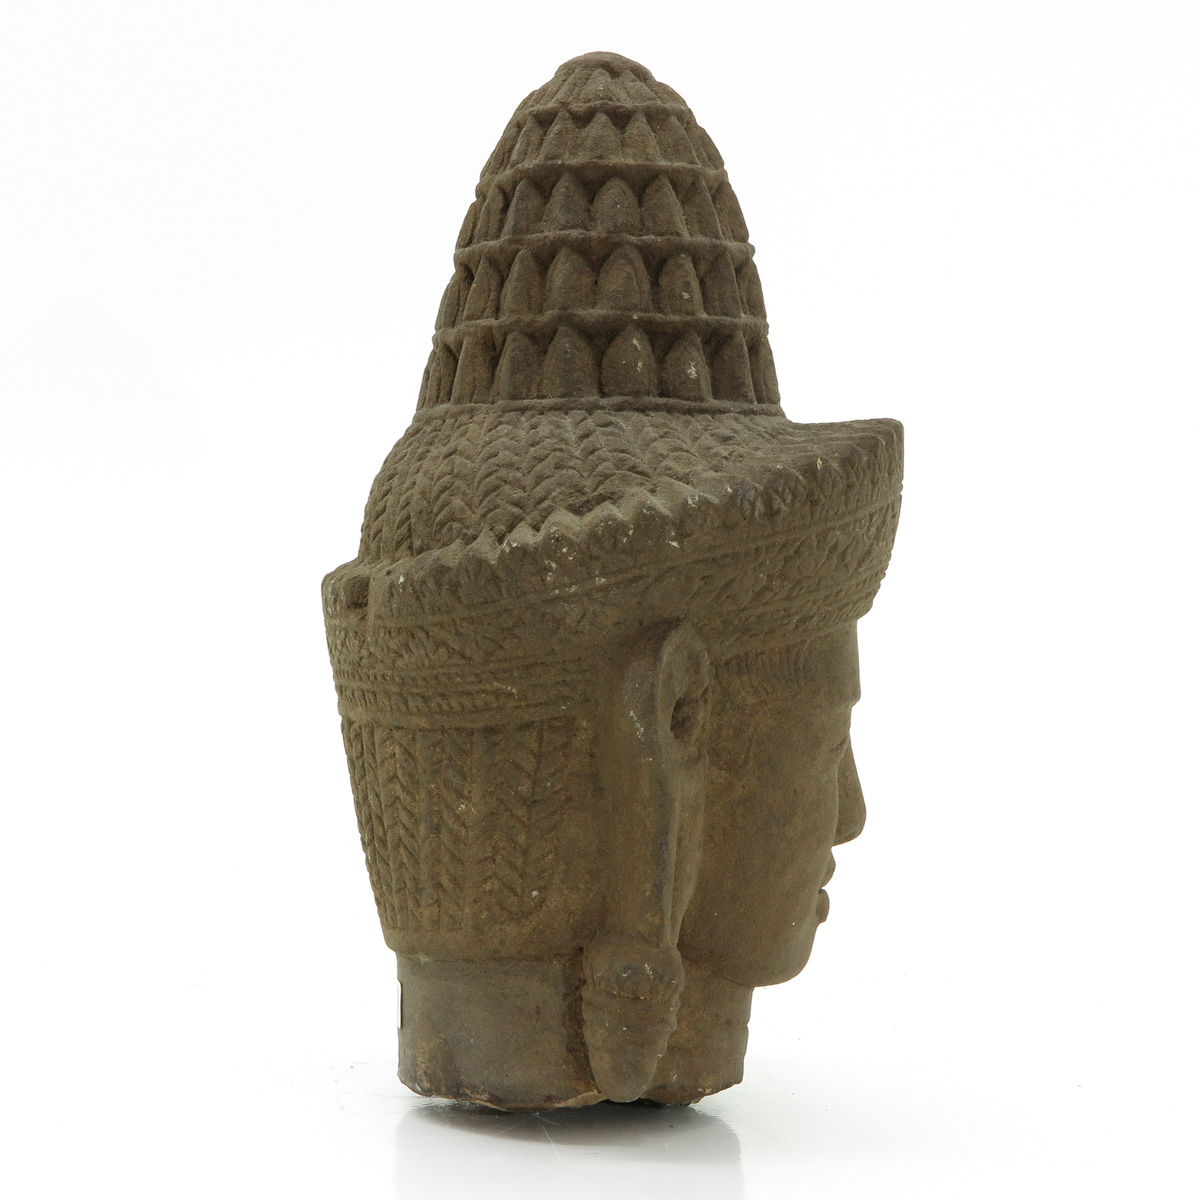 Lot 7071 - A Cambodian Carved Stone Sculpture